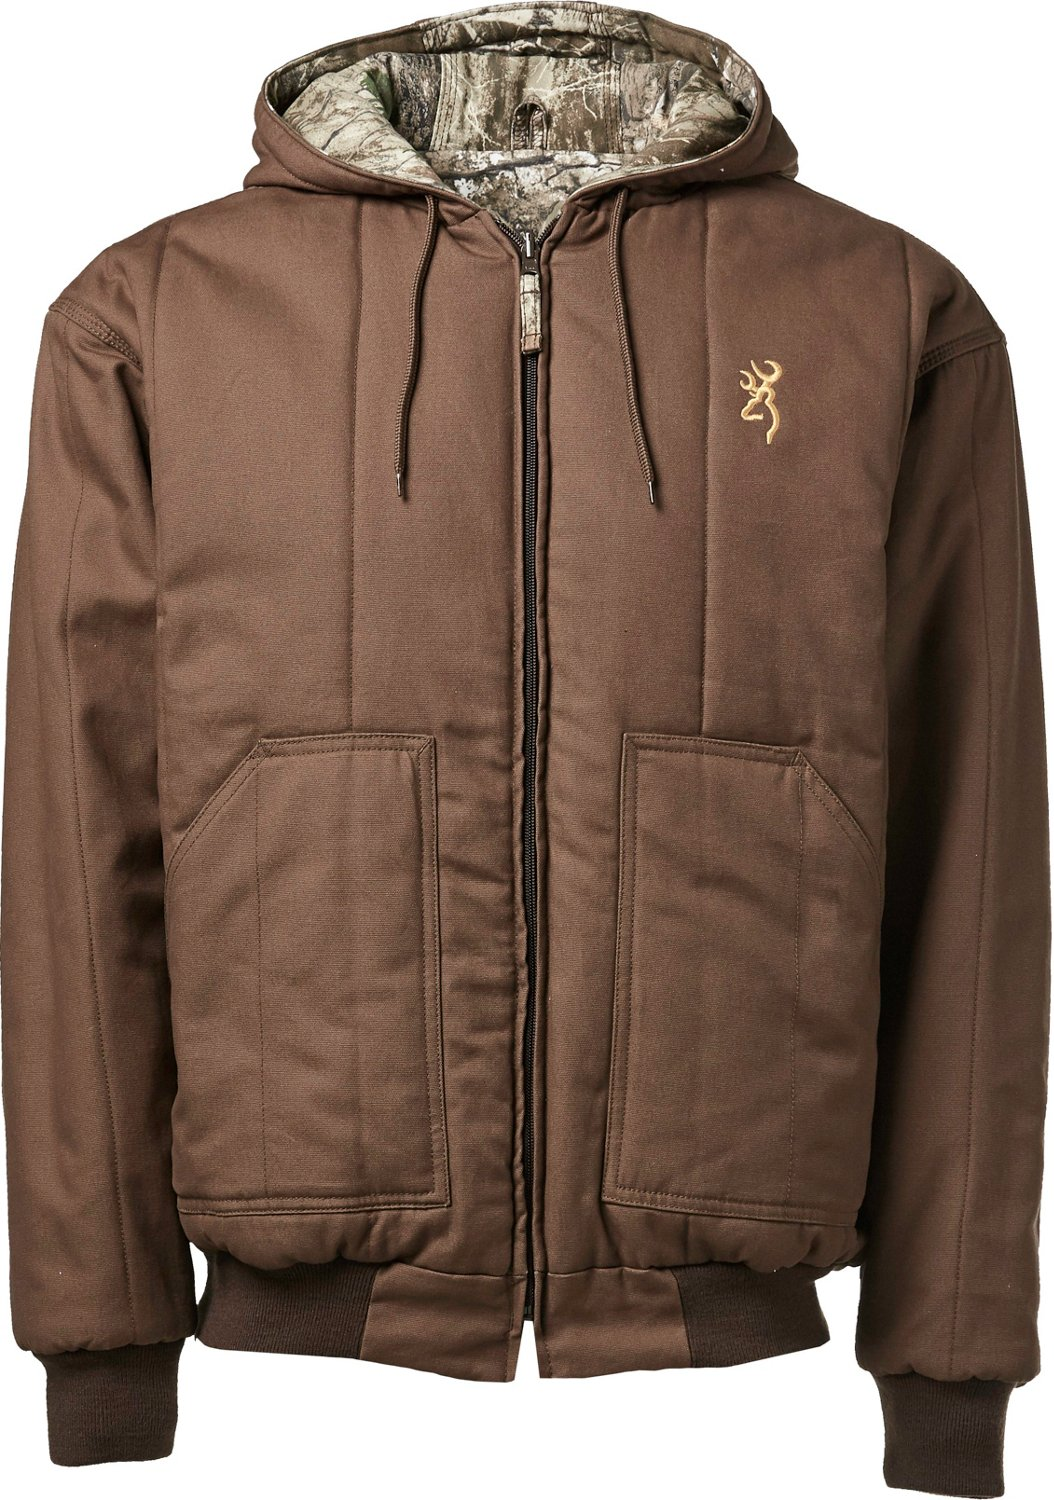 16b99b0d35 Display product reviews for Browning Men s Reversible Jacket